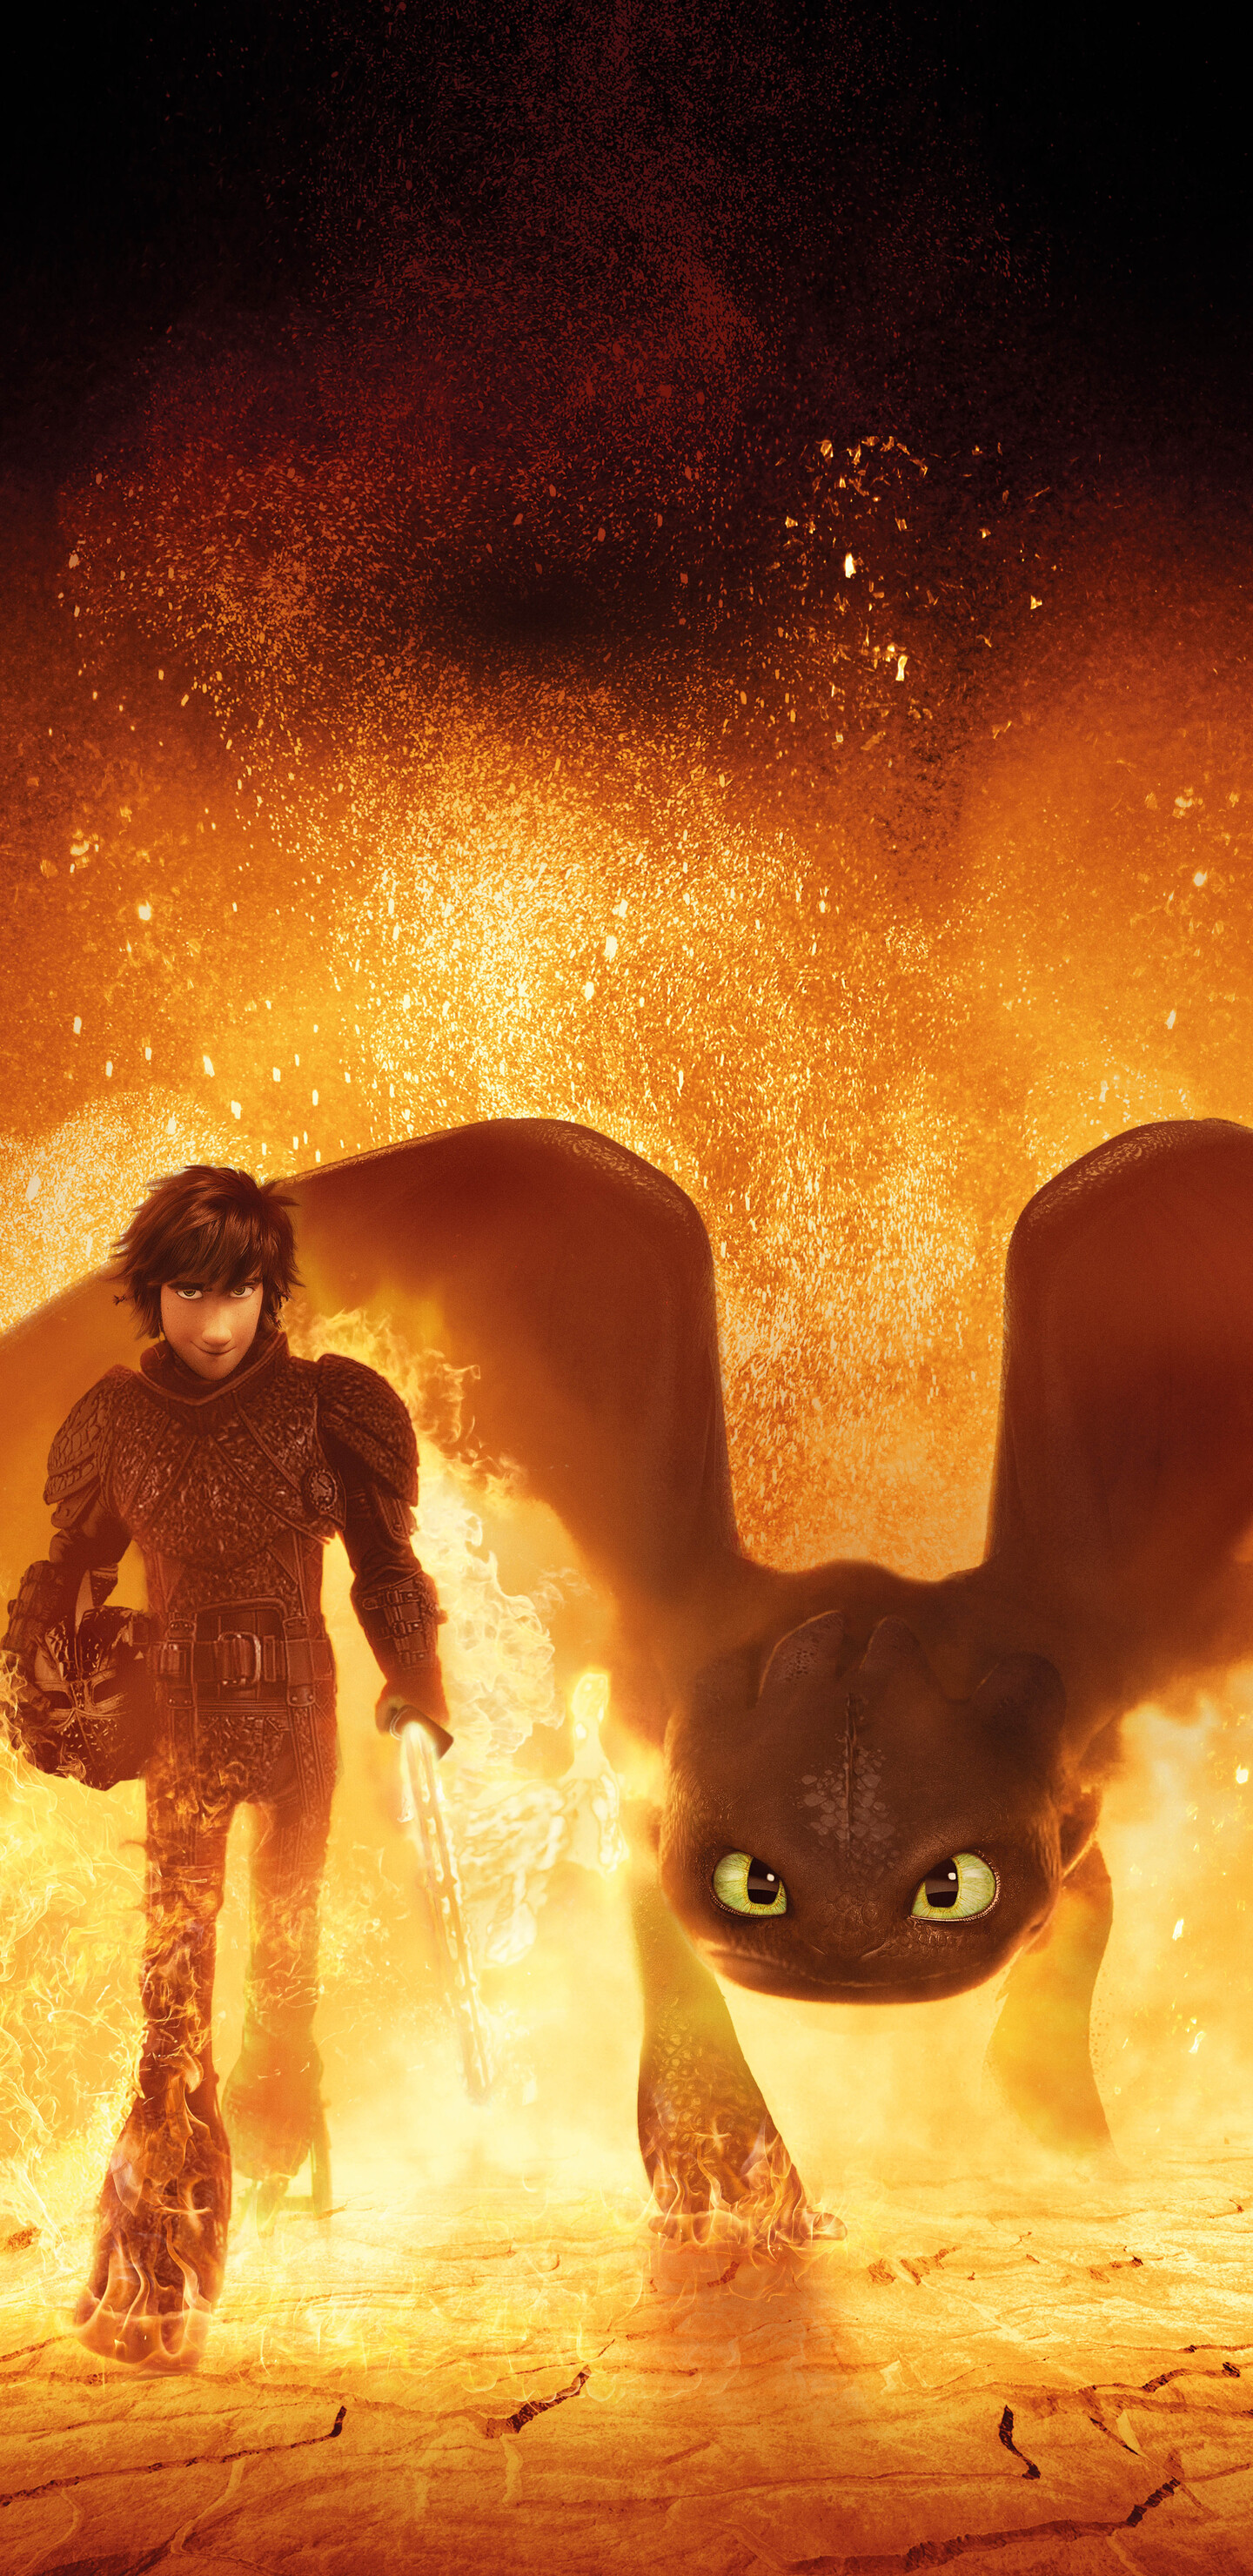 1440x2960 How To Train Your Dragon The Hidden World 4k ...